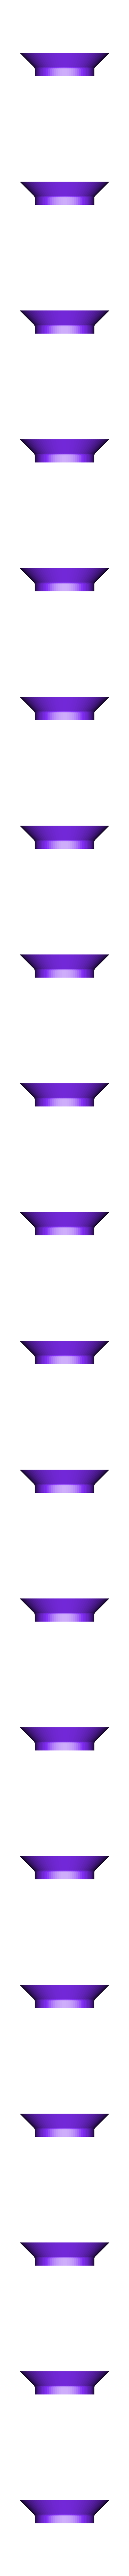 funnel for  espresso mason jar.stl Download free STL file Coffee scoop, scoop holder, and funnel for mason jar • 3D printable model, CWCDesigns